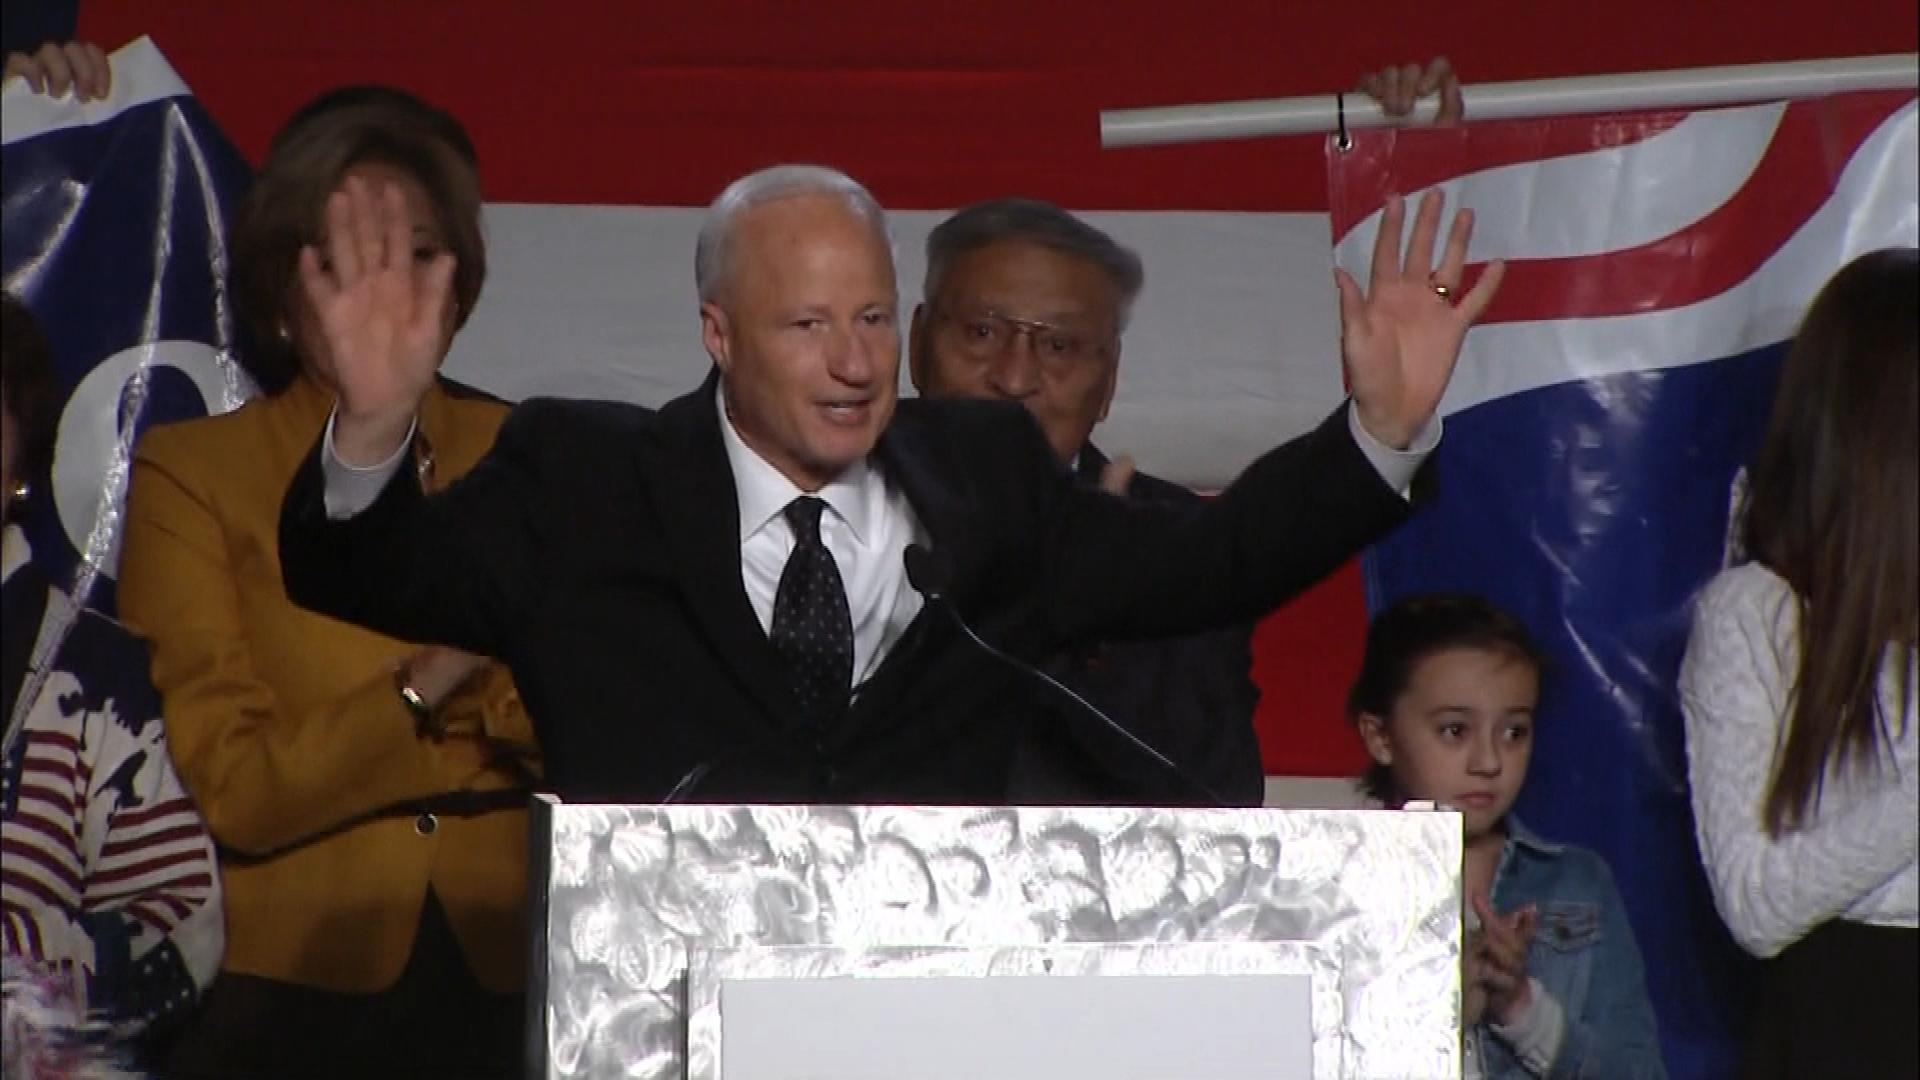 Rep. Mike Coffman delivers his acceptance speech. (credit: CBS)